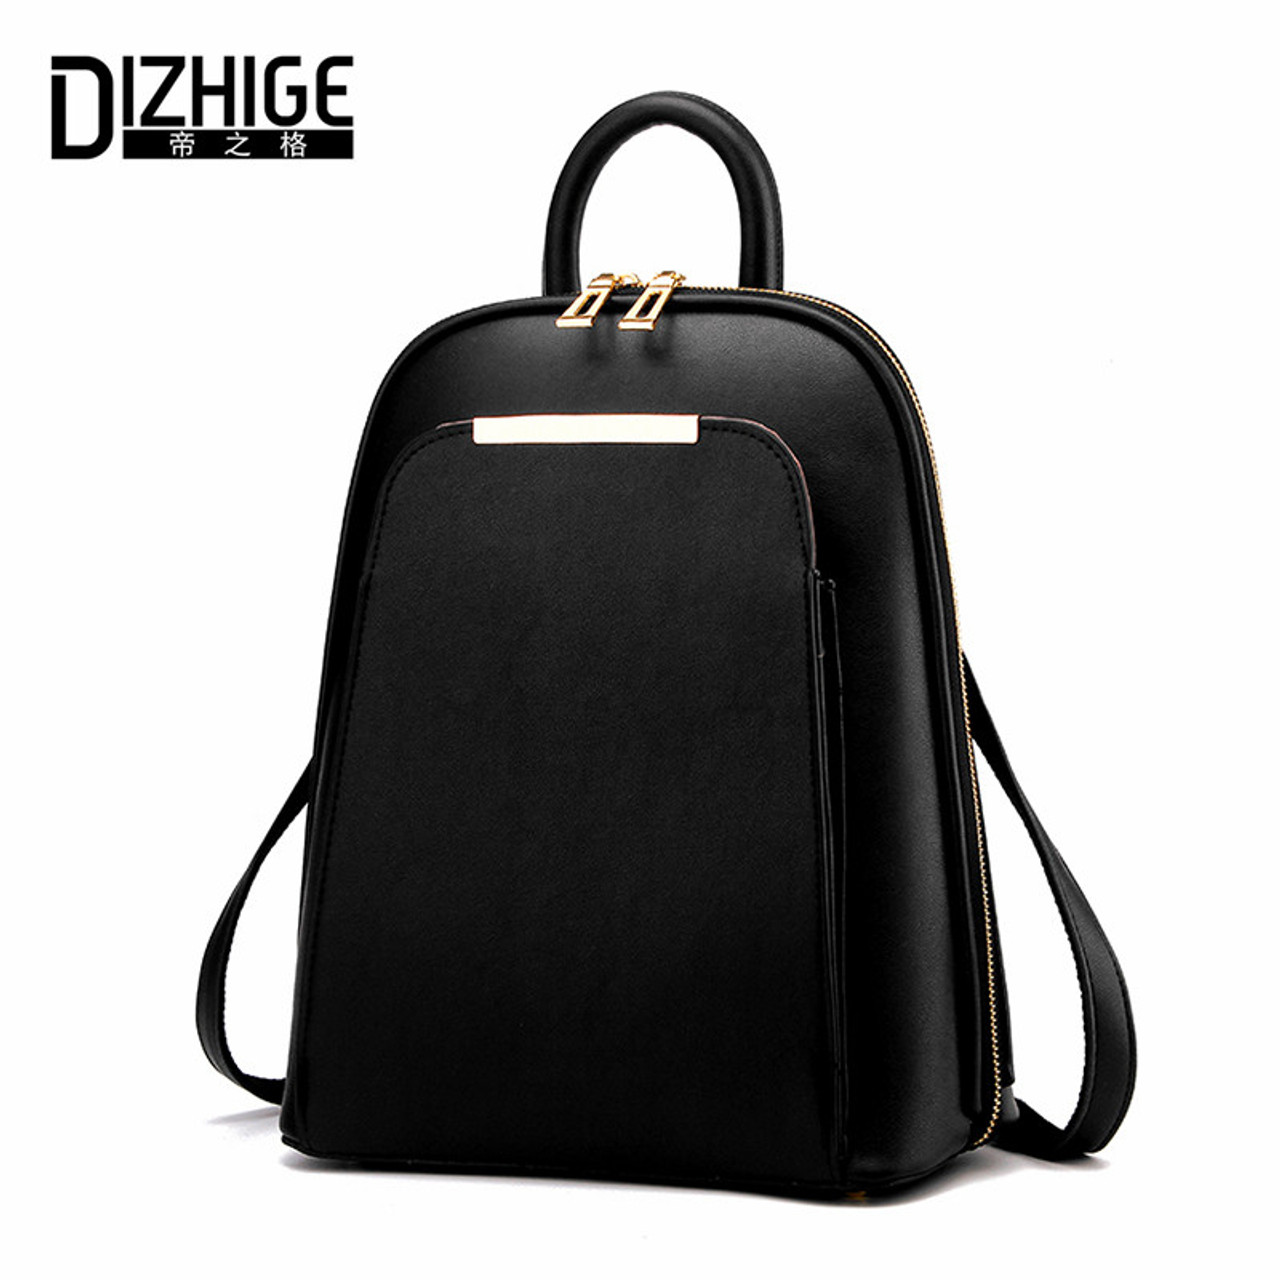 72858f8214b7 DIZHIGE Brand 2017 Solid High Quality PU Leather Backpack Women Designer  School Bags For Teenagers Girls ...